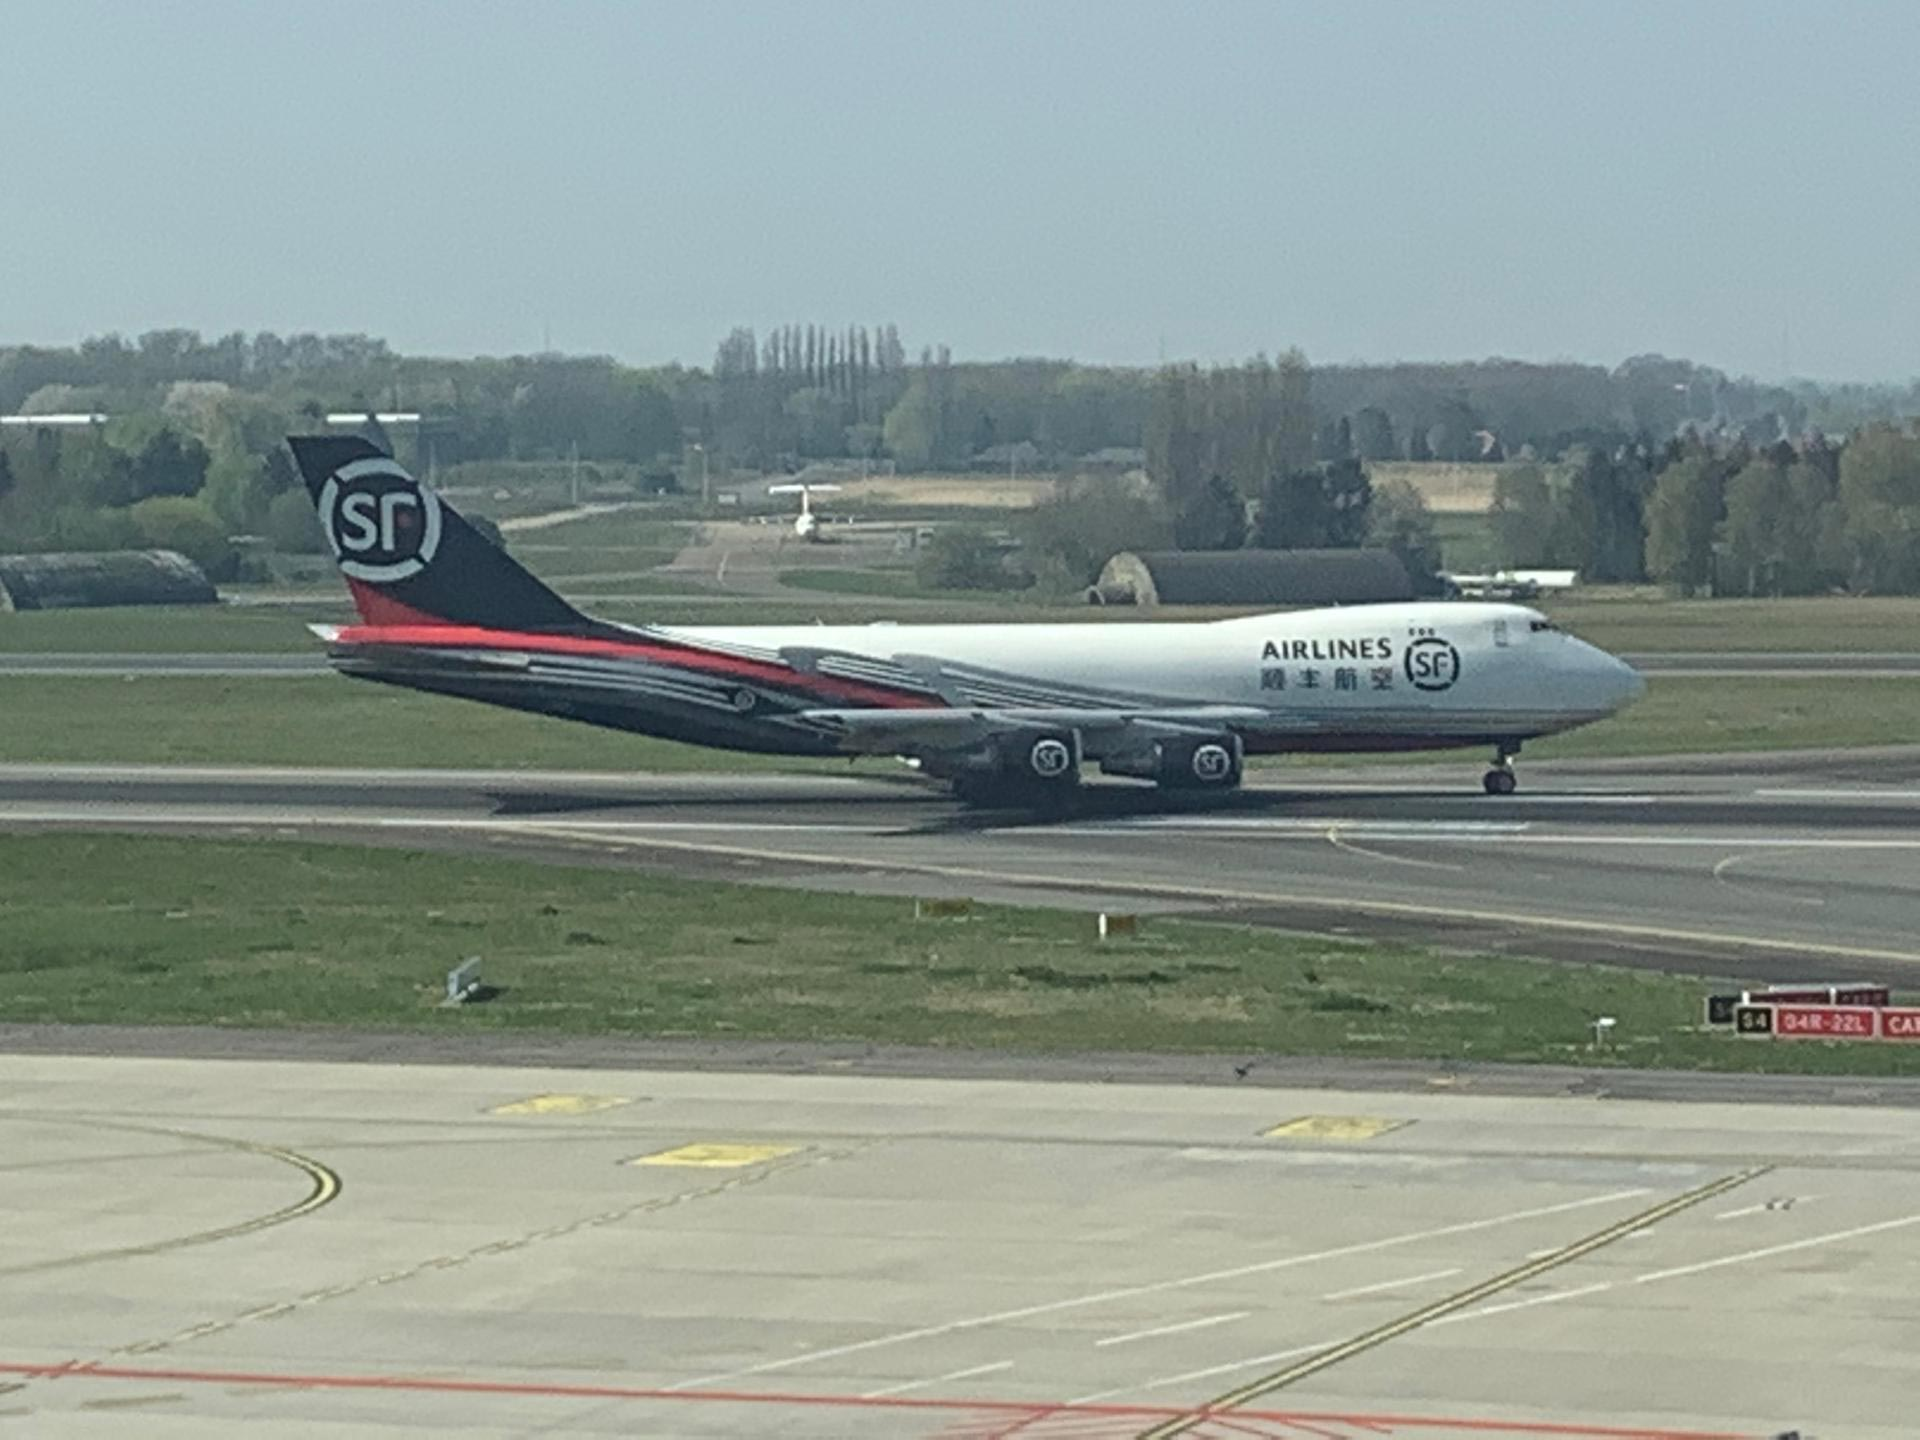 Liege Airport welcomes SF Airlines which made its first landing this week